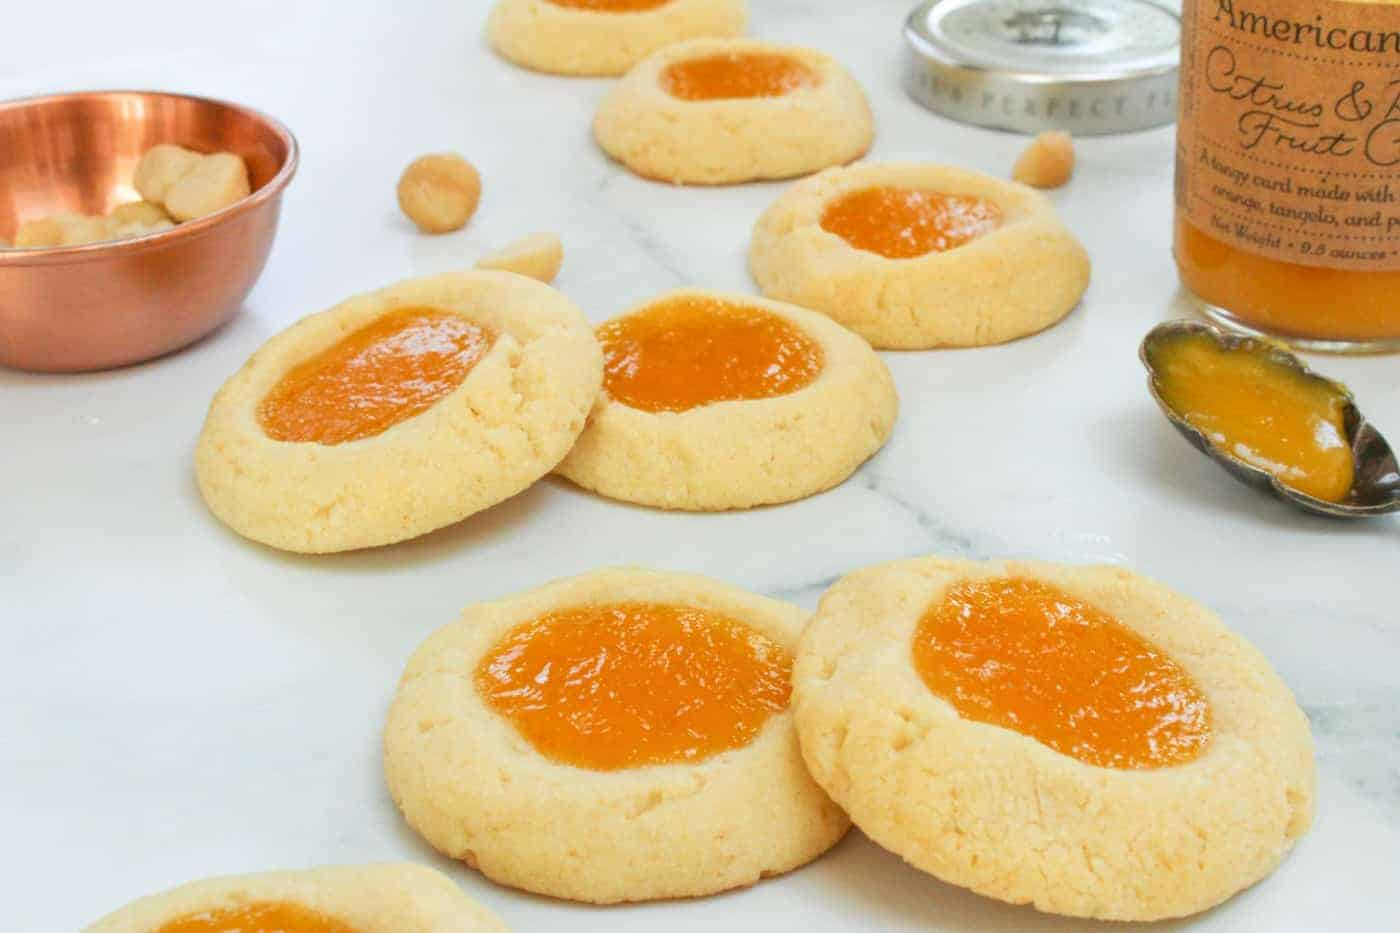 Macadamia Nut Thumbprint Cookies with Citrus and Passion Fruit Curd on a counter top